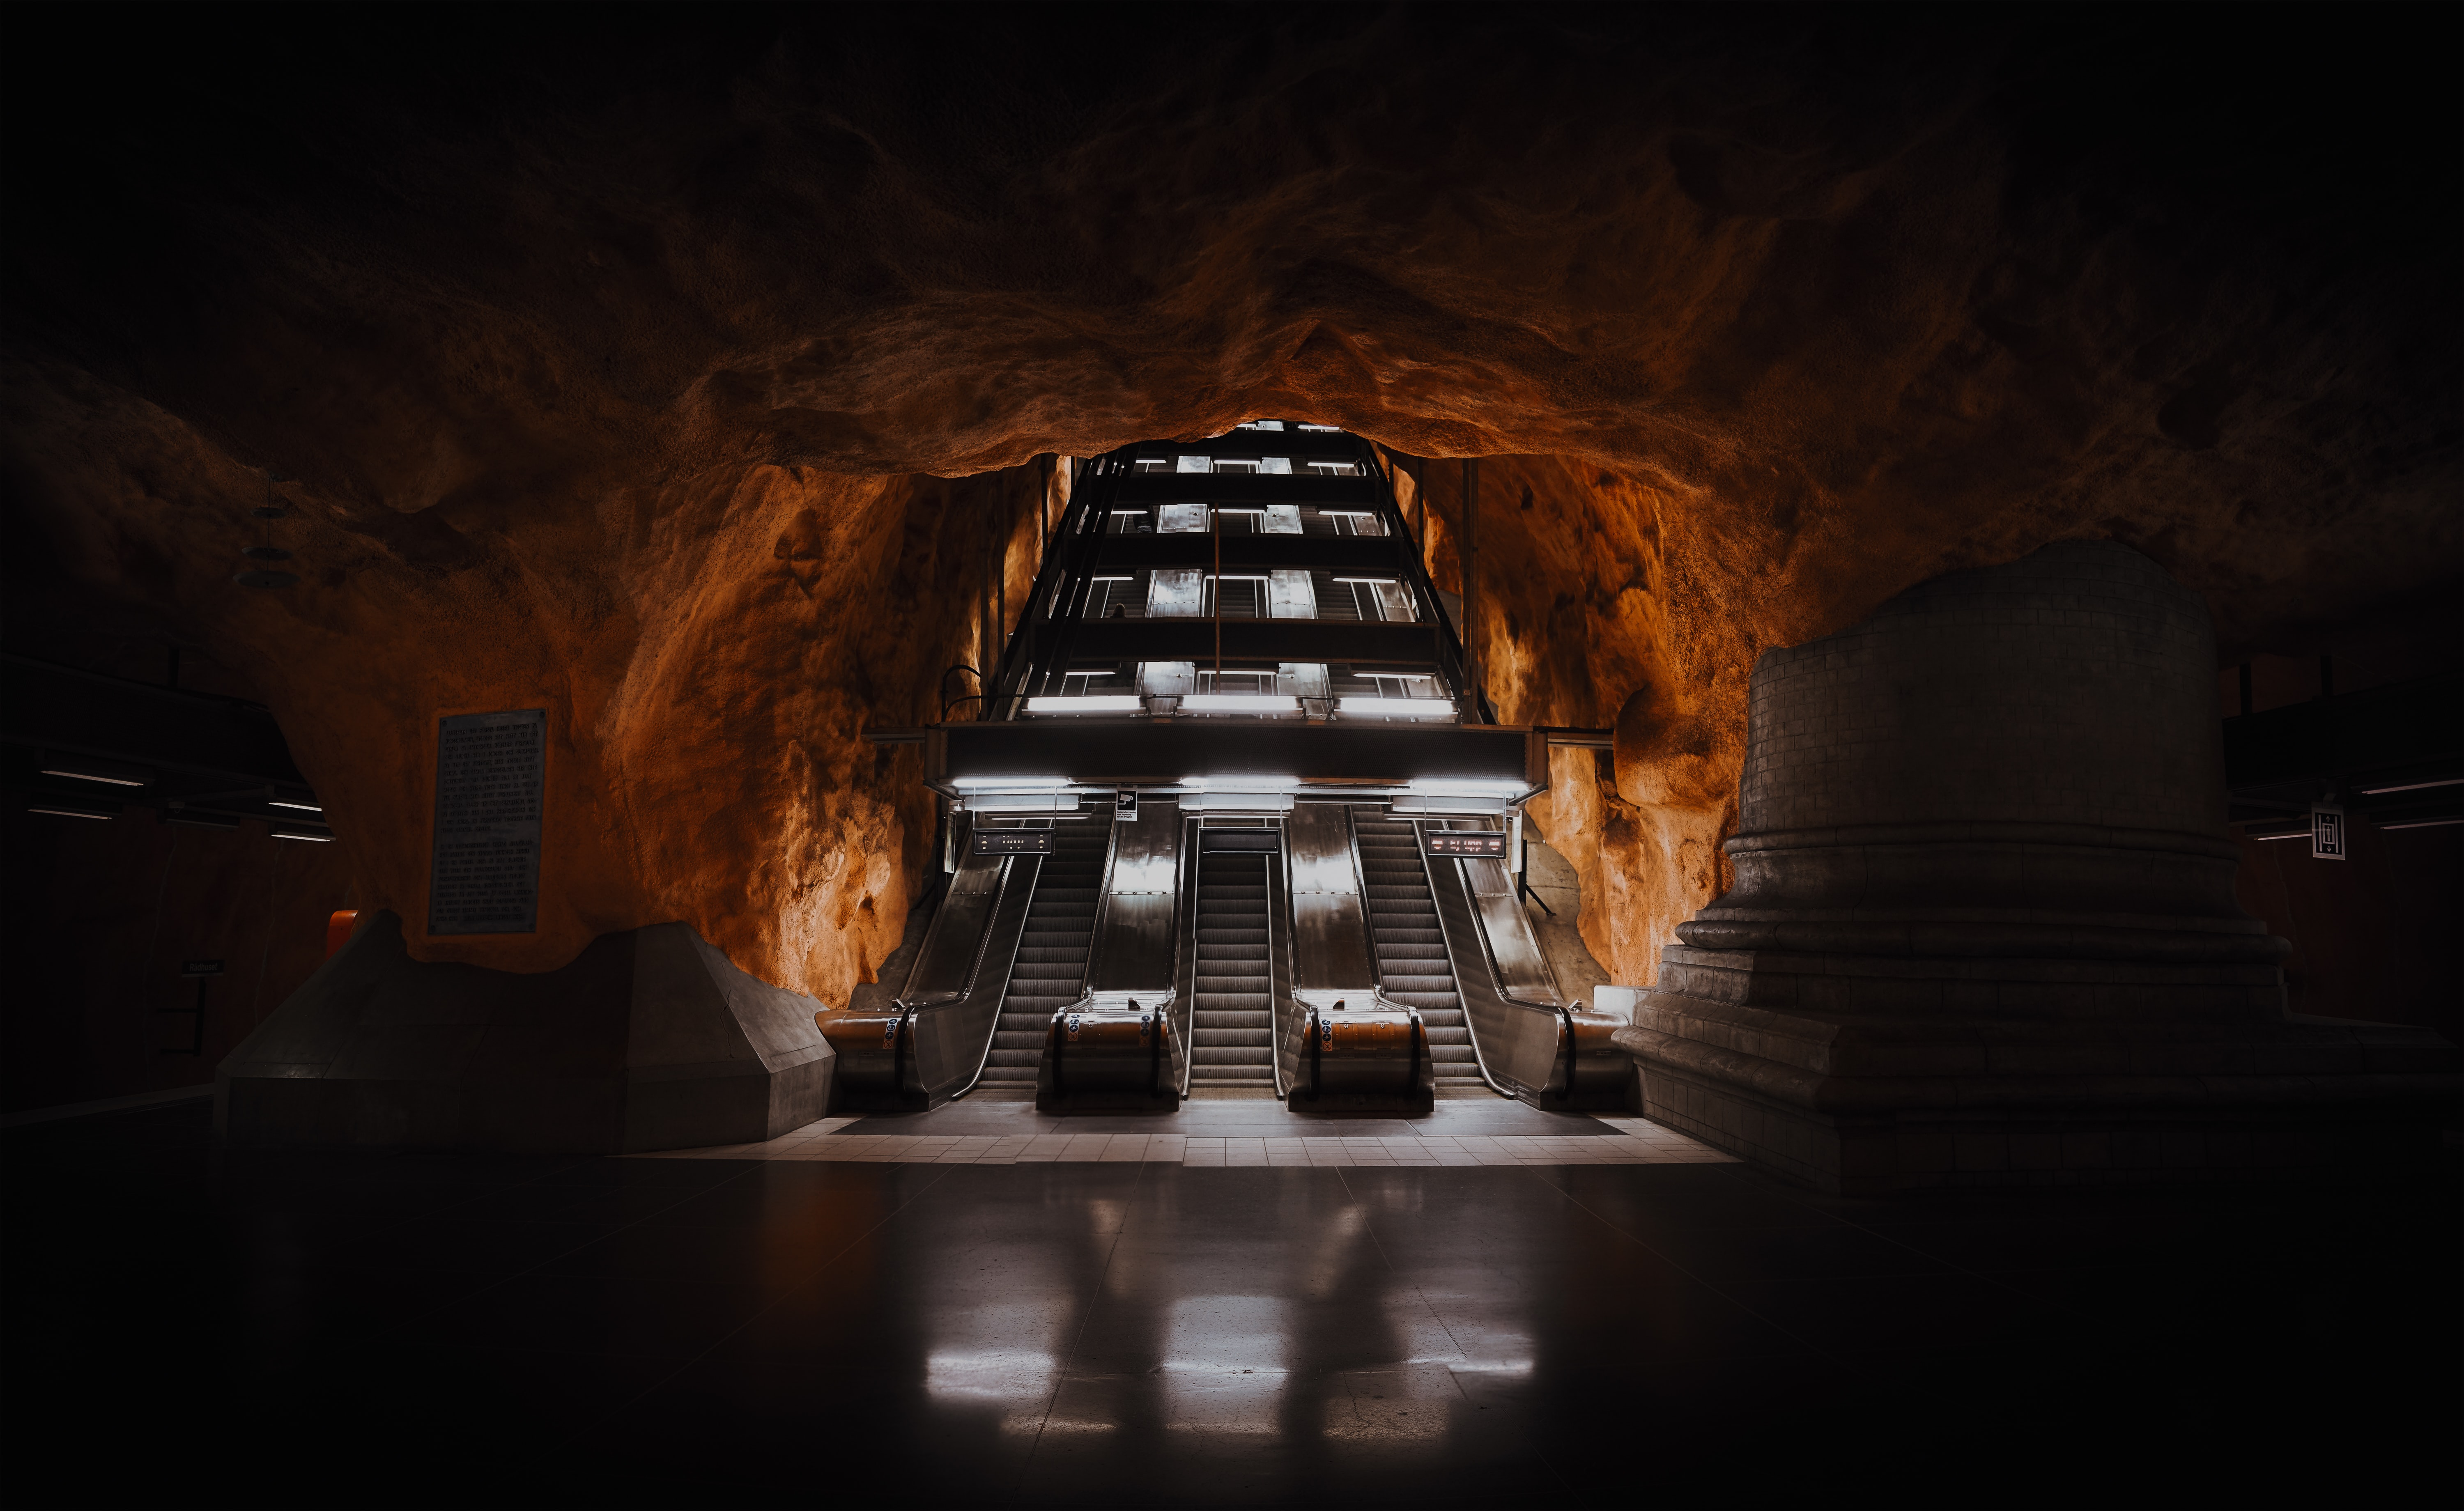 148440 Screensavers and Wallpapers Metro for phone. Download Dark, Miscellanea, Miscellaneous, Tunnel, Metro, Subway, Escalator pictures for free